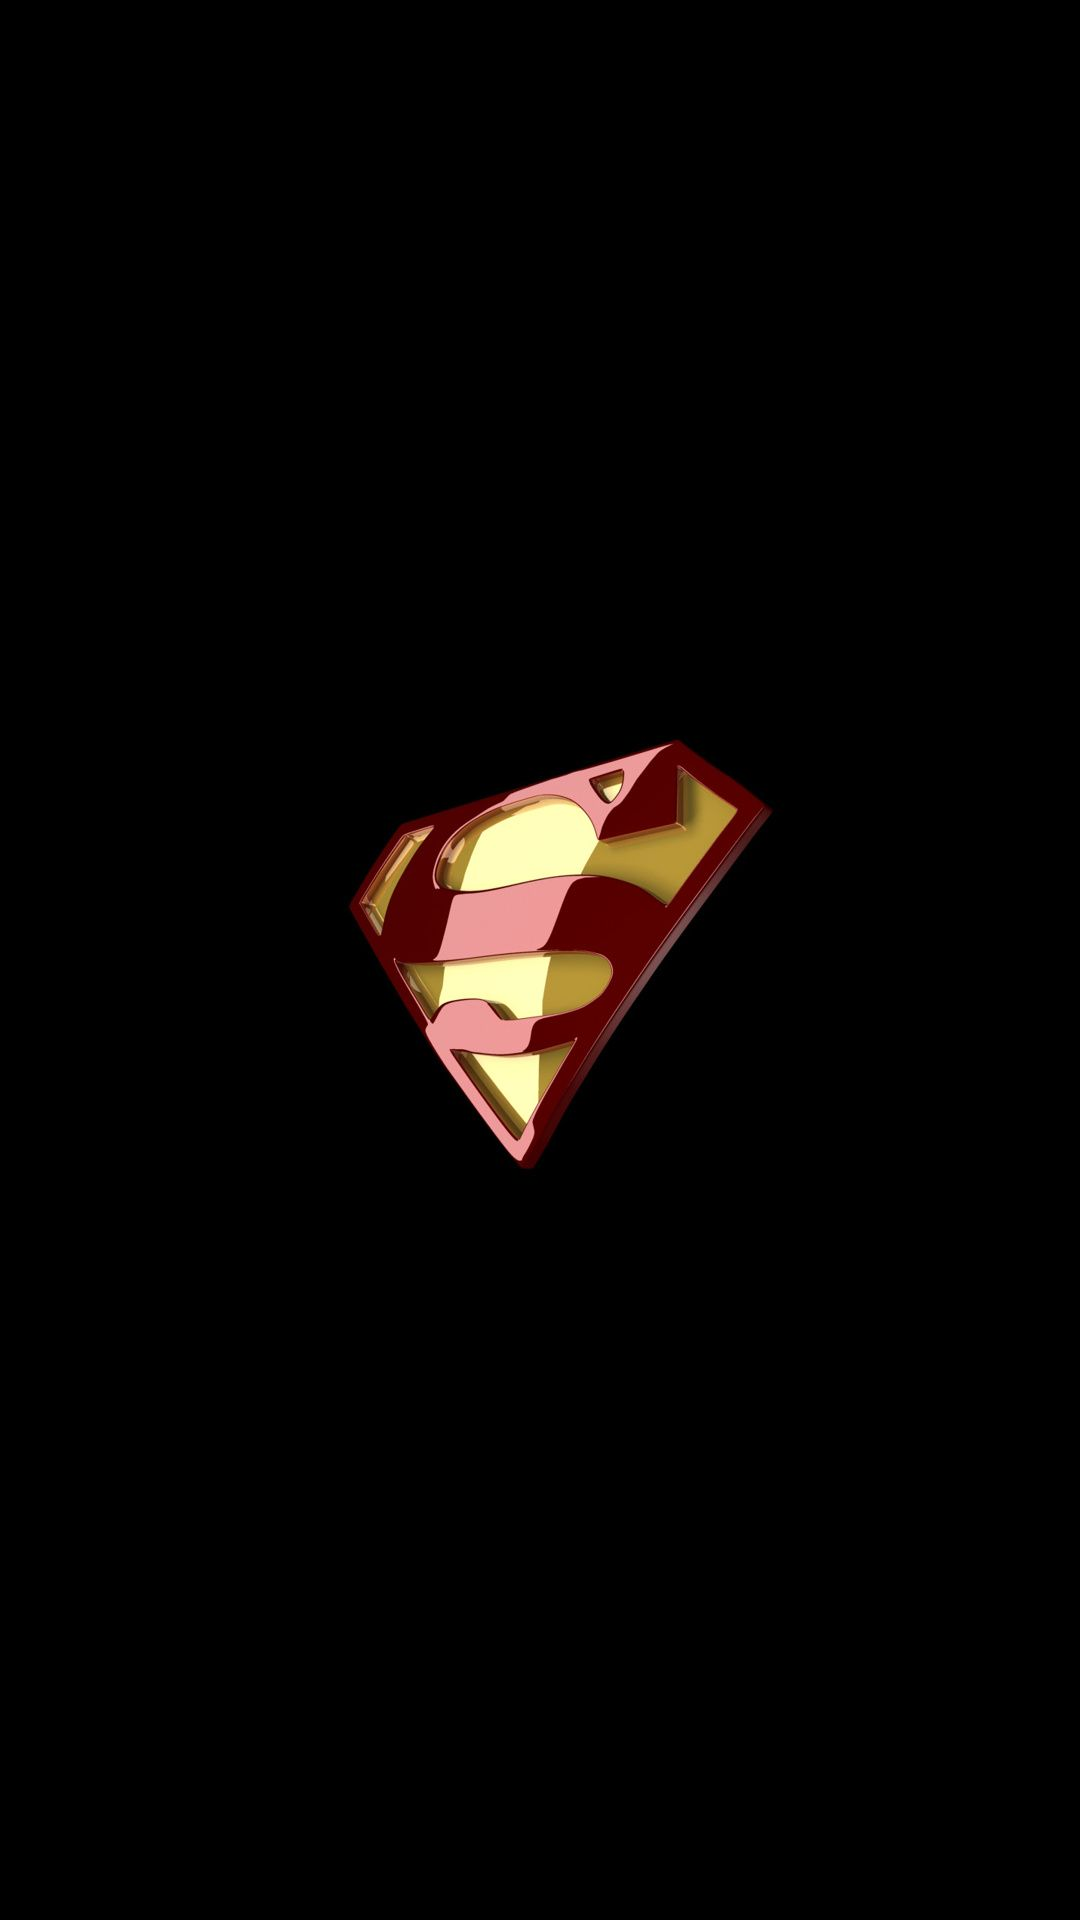 Pin by Jason Clements on Wallpapers Superman wallpaper